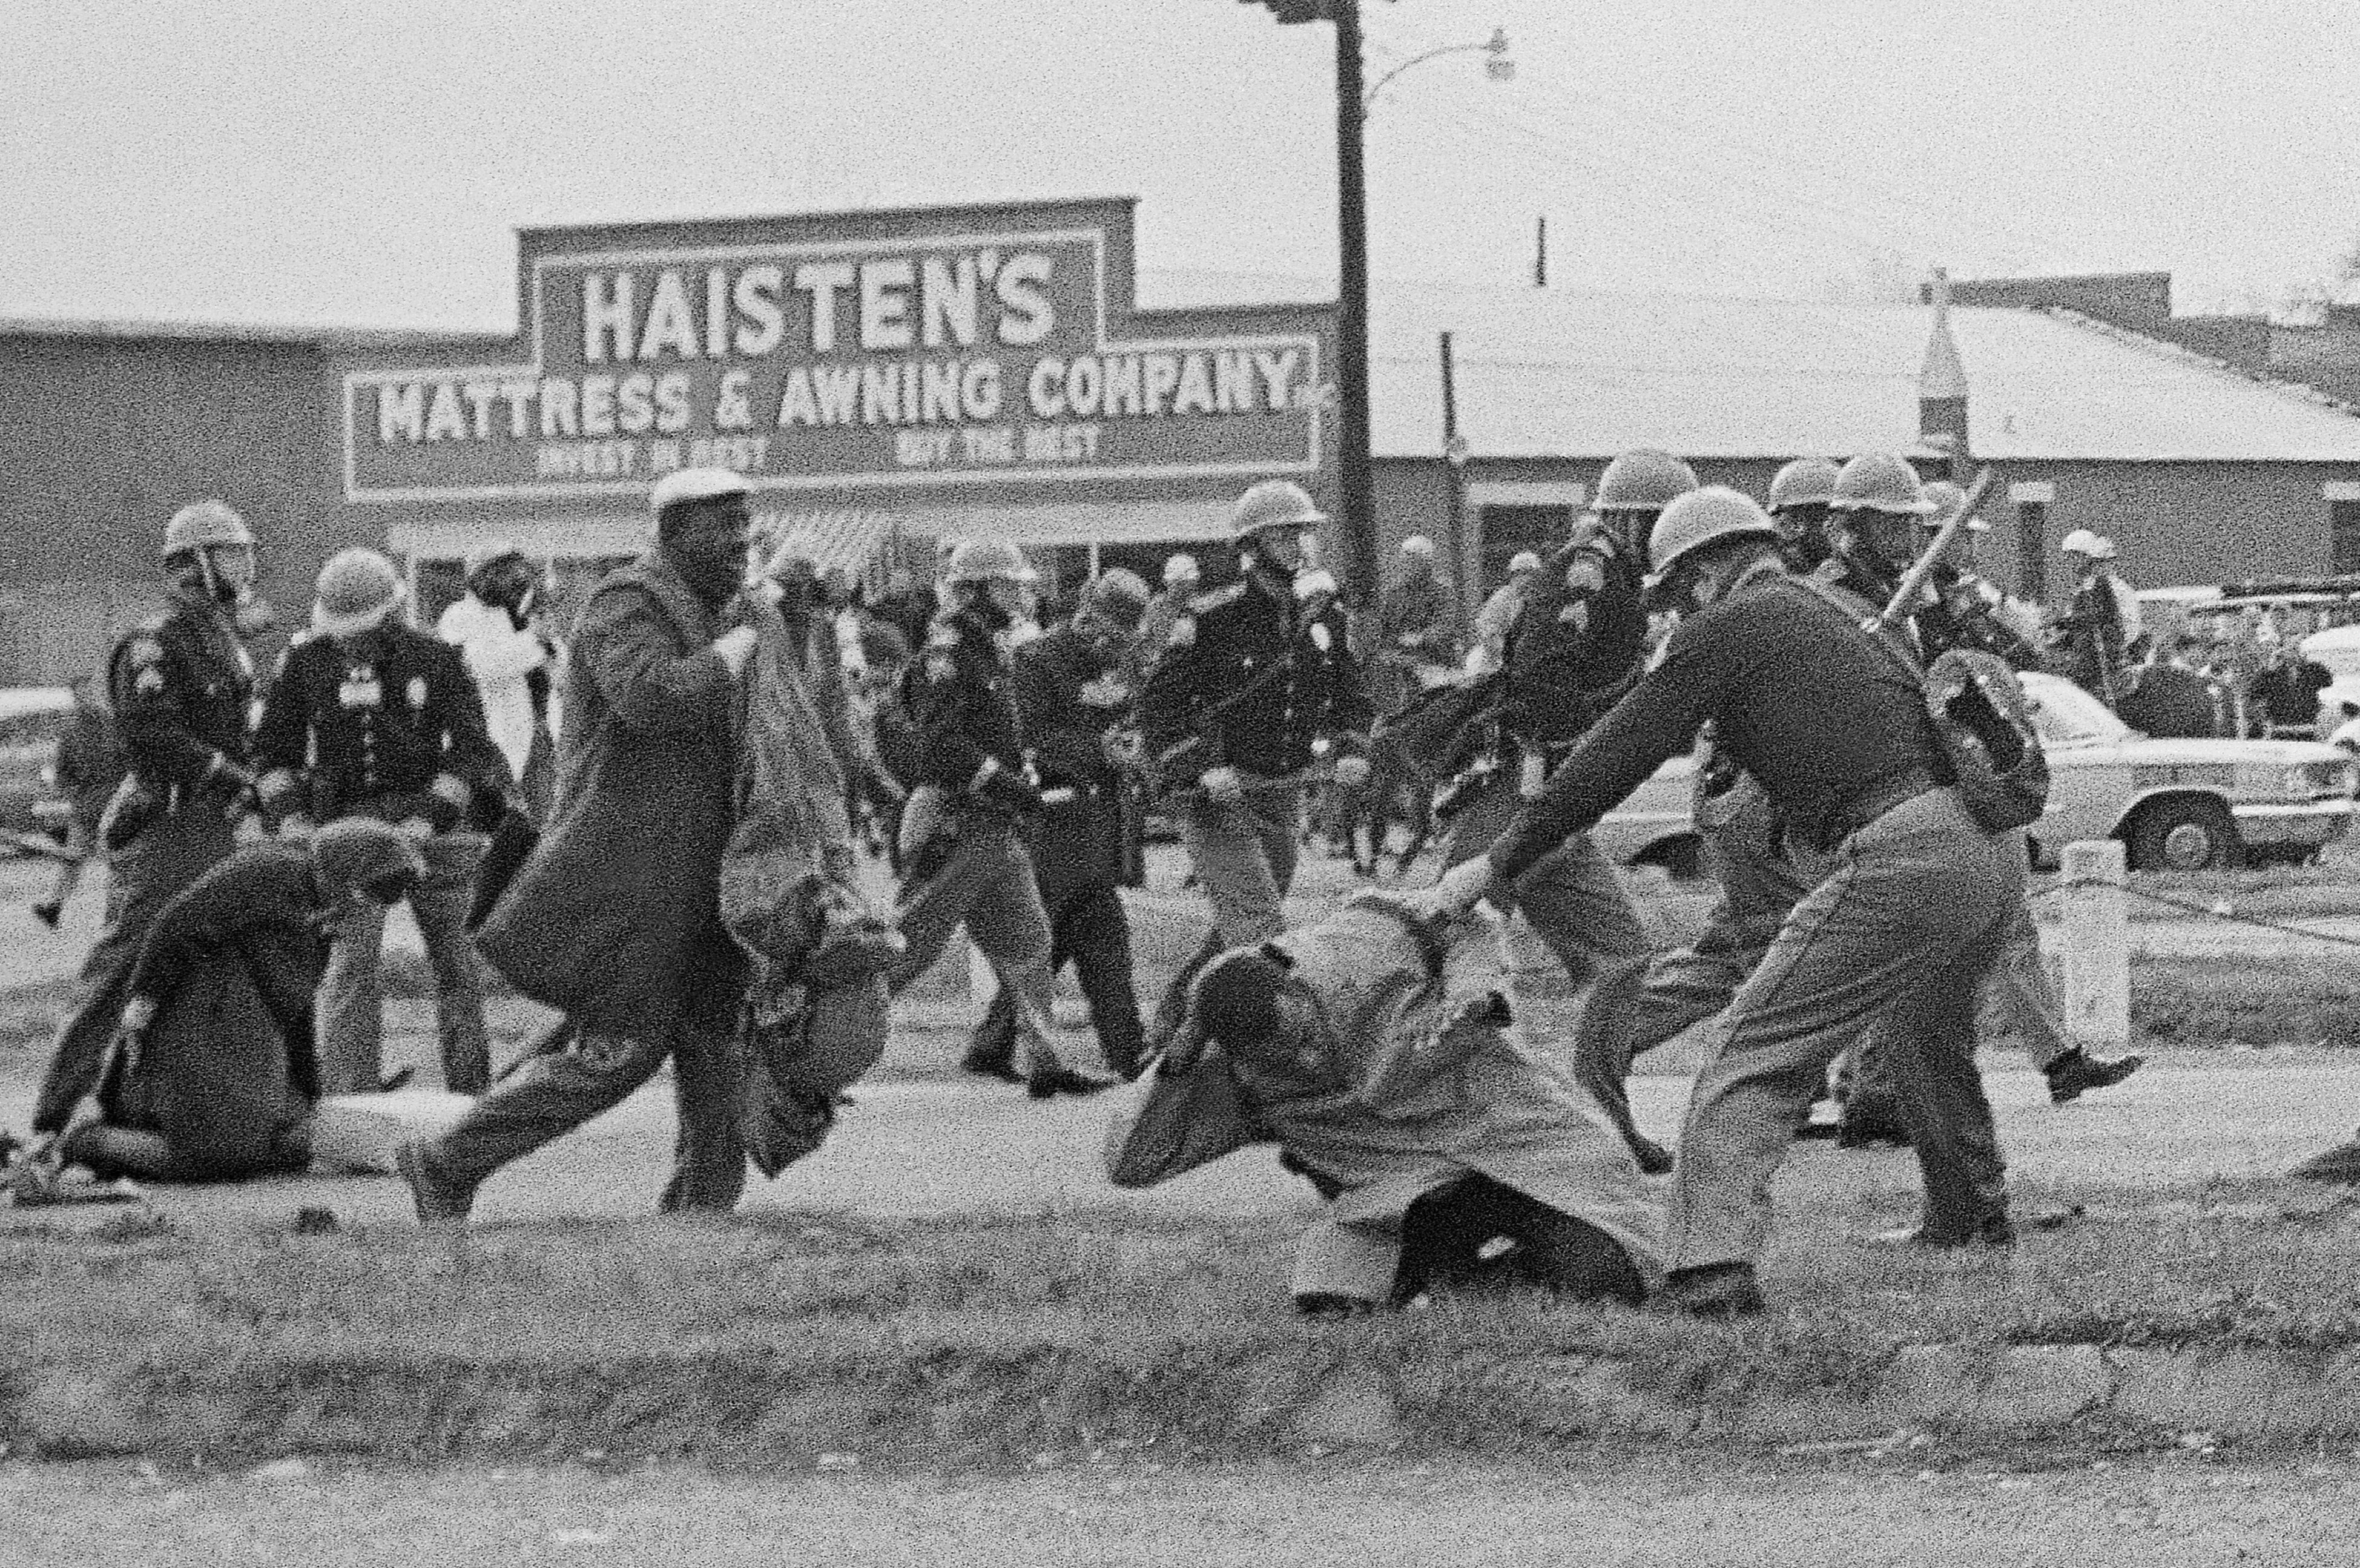 In this March 7, 1965, file photo, a state trooper swings a billy club at John Lewis, right foreground, chairman of the Student Nonviolent Coordinating Committee, to break up a civil rights voting march in Selma, Ala